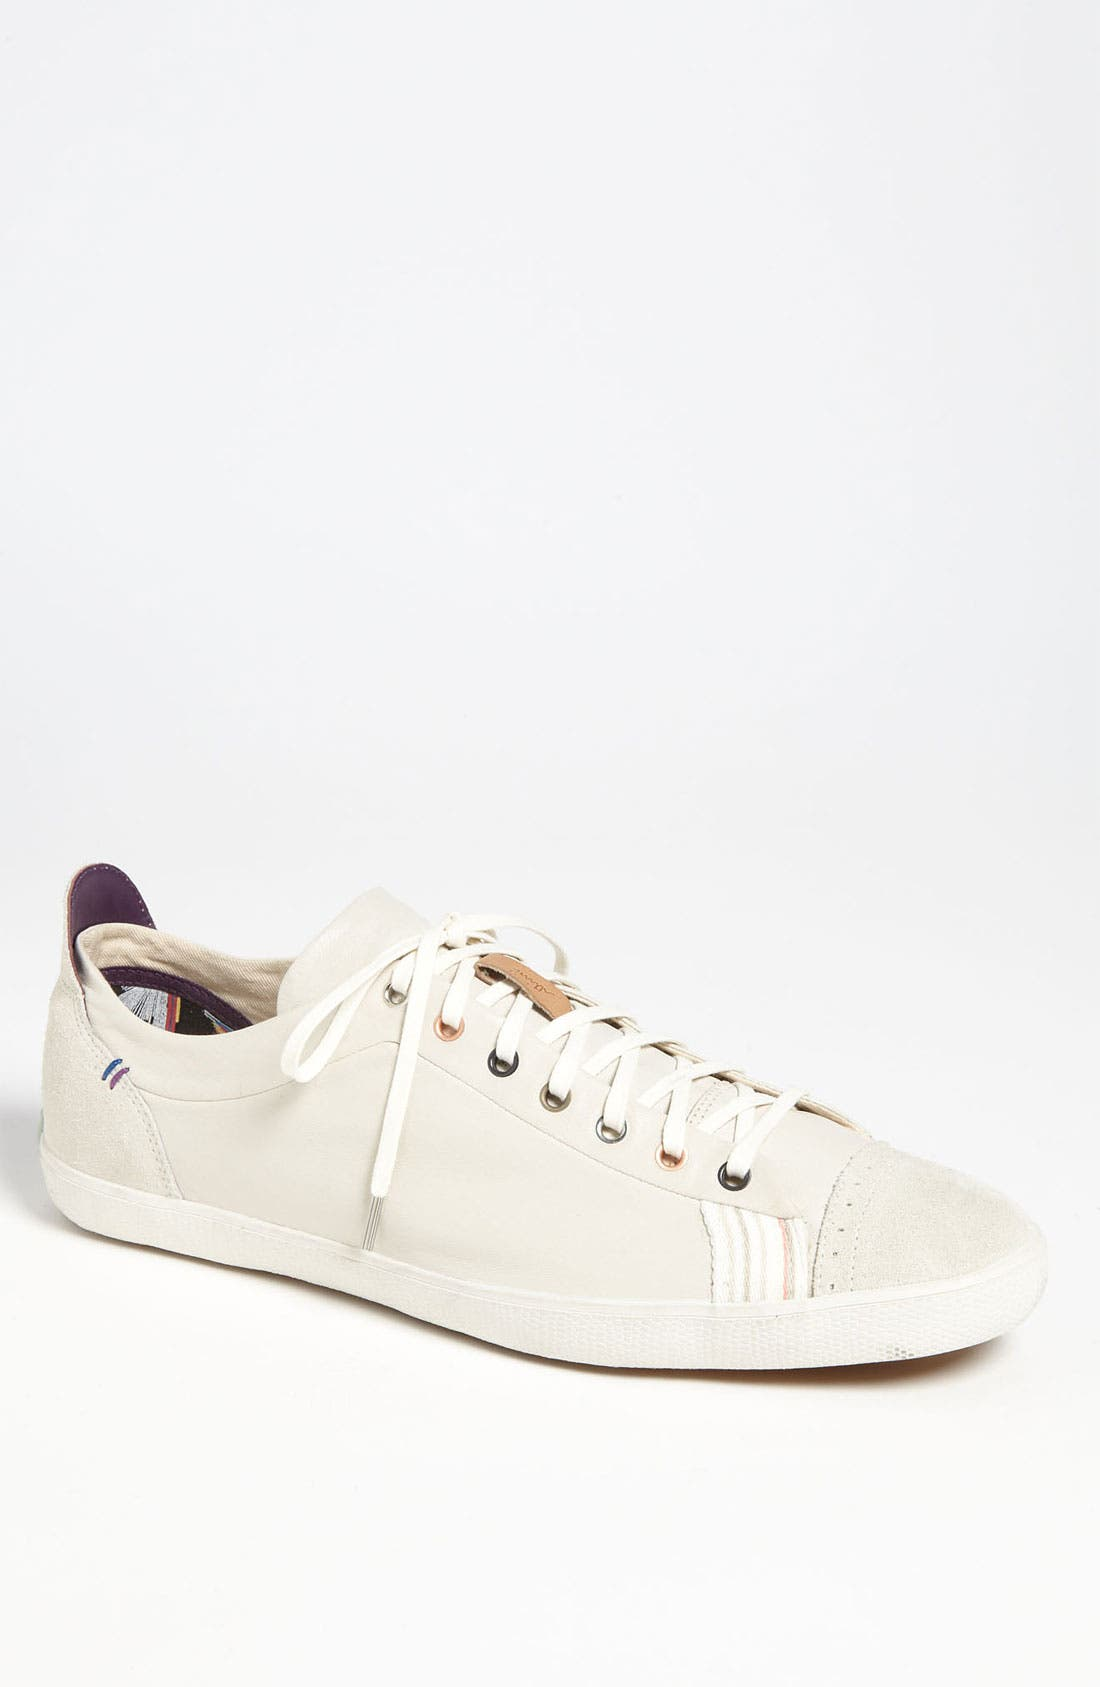 Main Image - Paul Smith 'Vestri Lo Pro' Sneaker